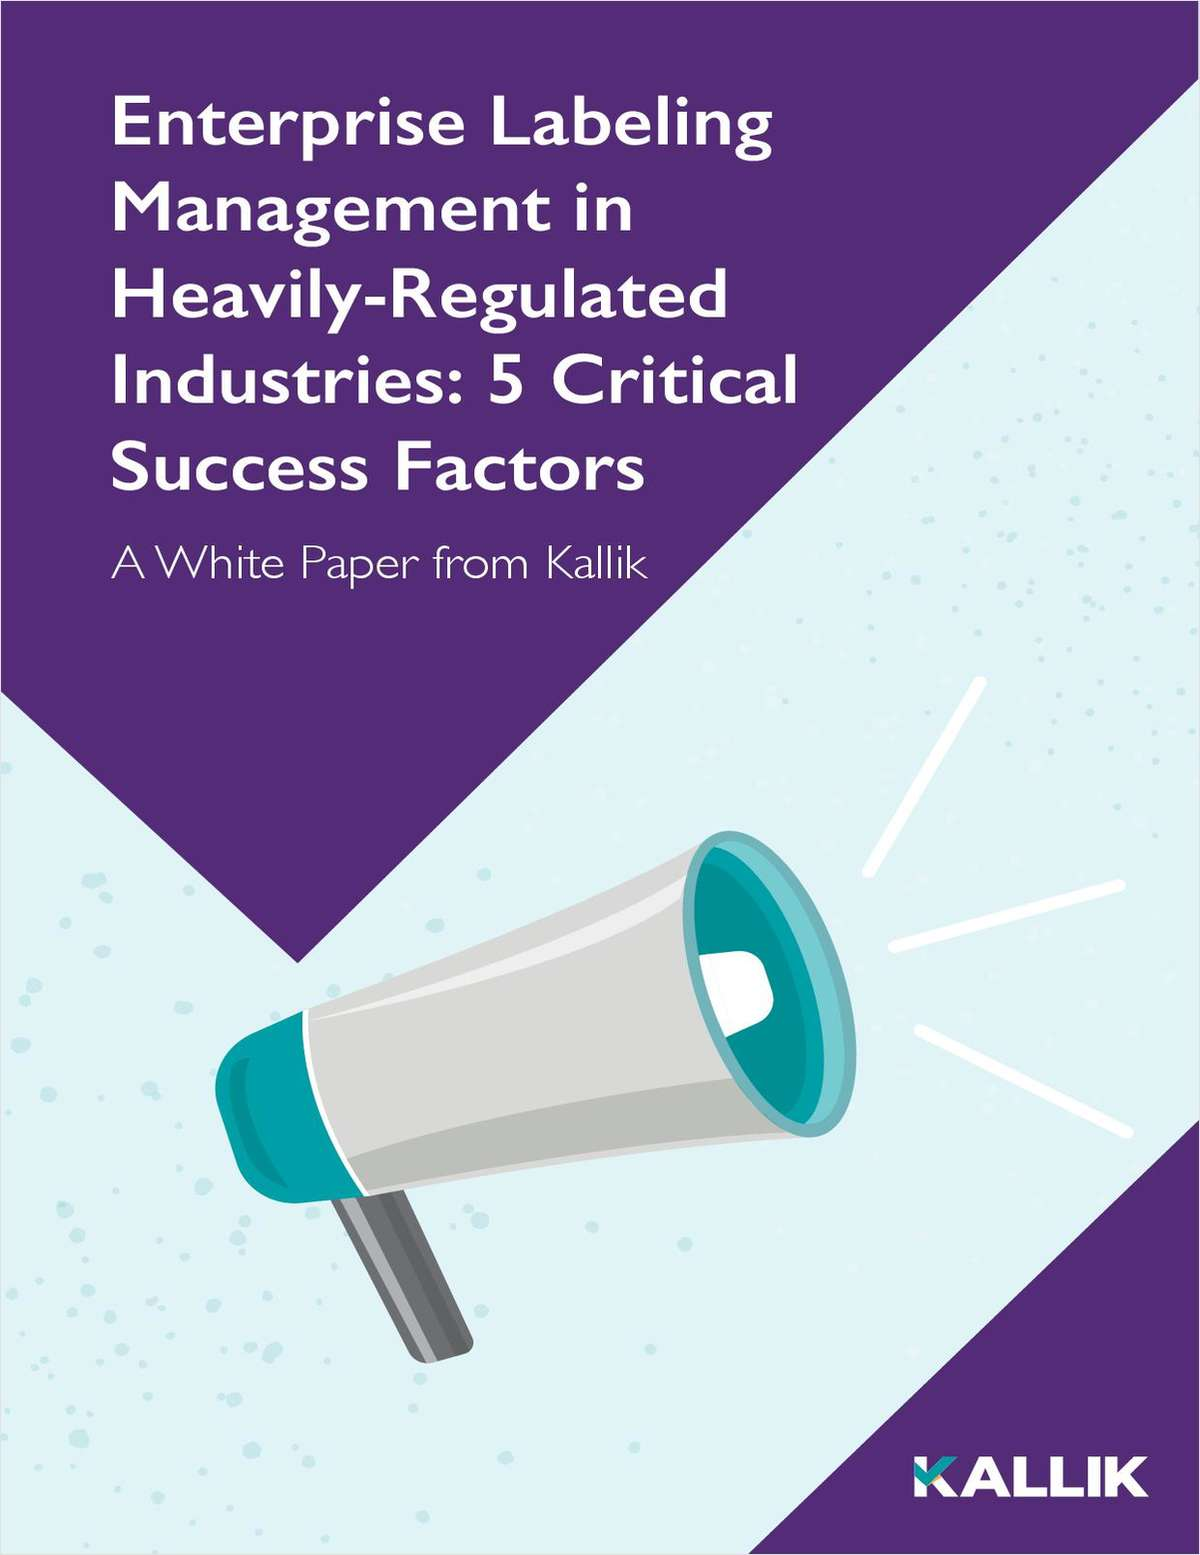 Enterprise Labeling Management in Heavily-Regulated Industries